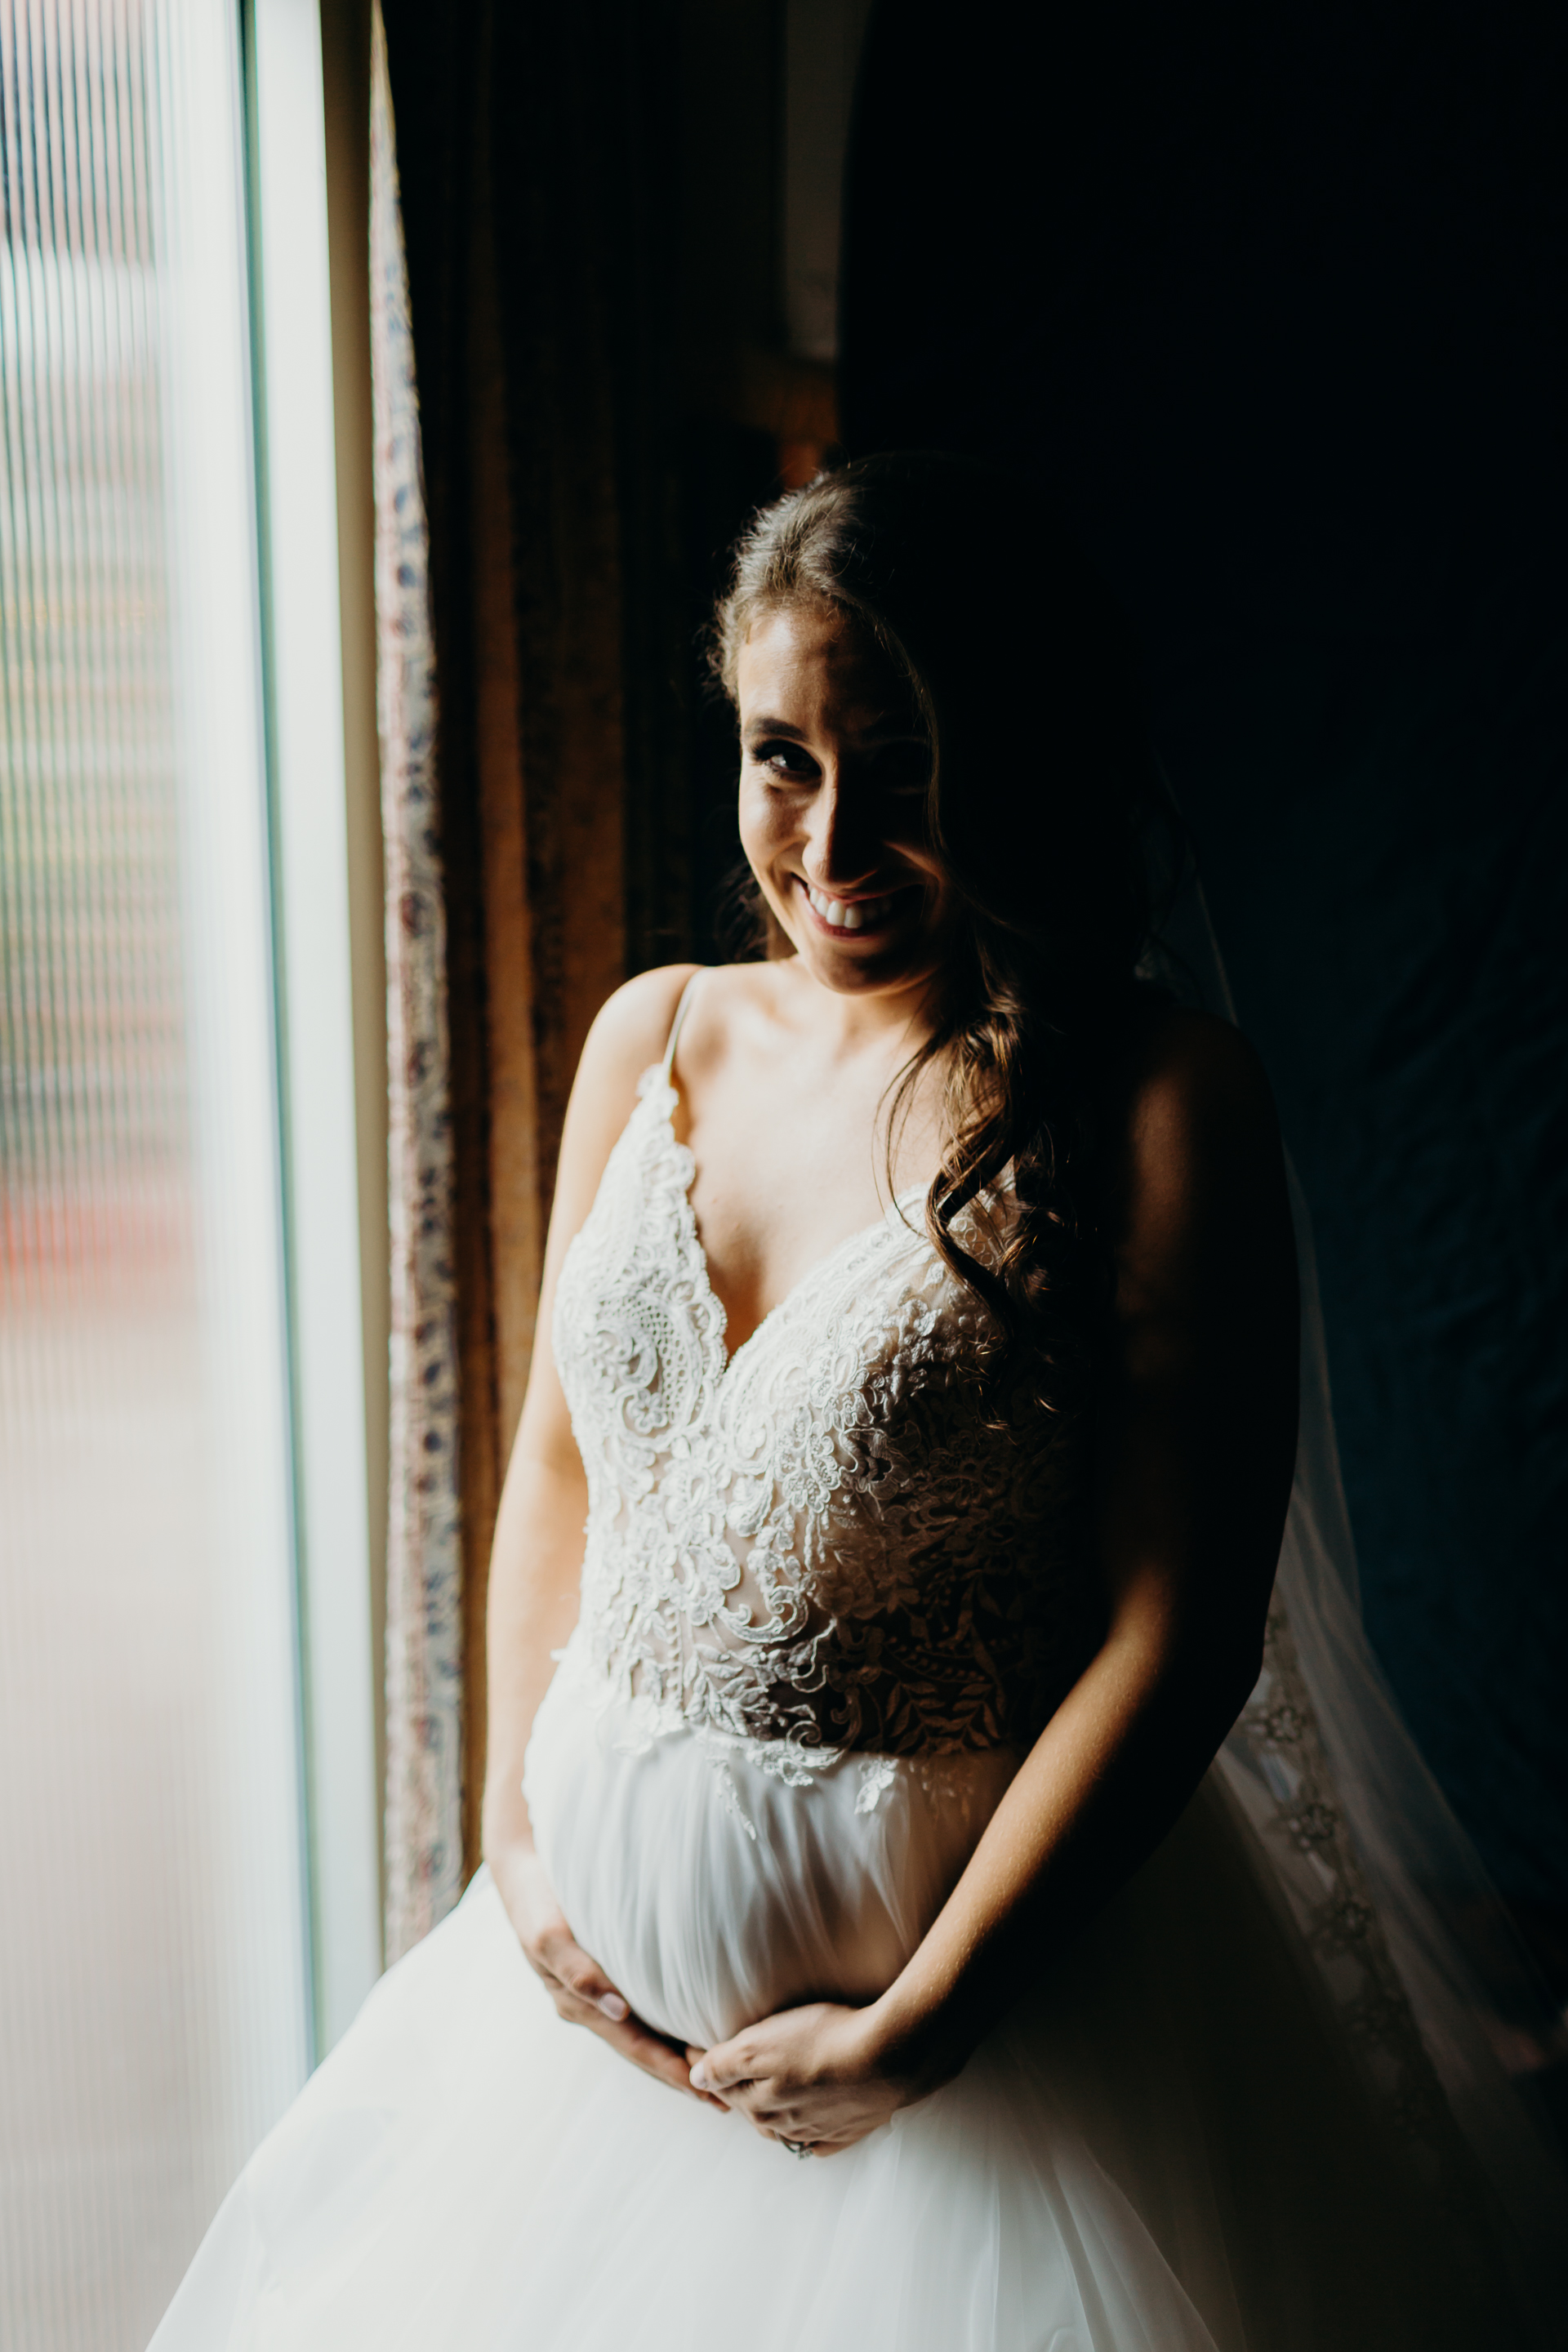 Gianna Keiko Atlanta San Francisco NYC Wedding Engagement Wedding Elopement Photographer_Sneak Peek-41.jpg